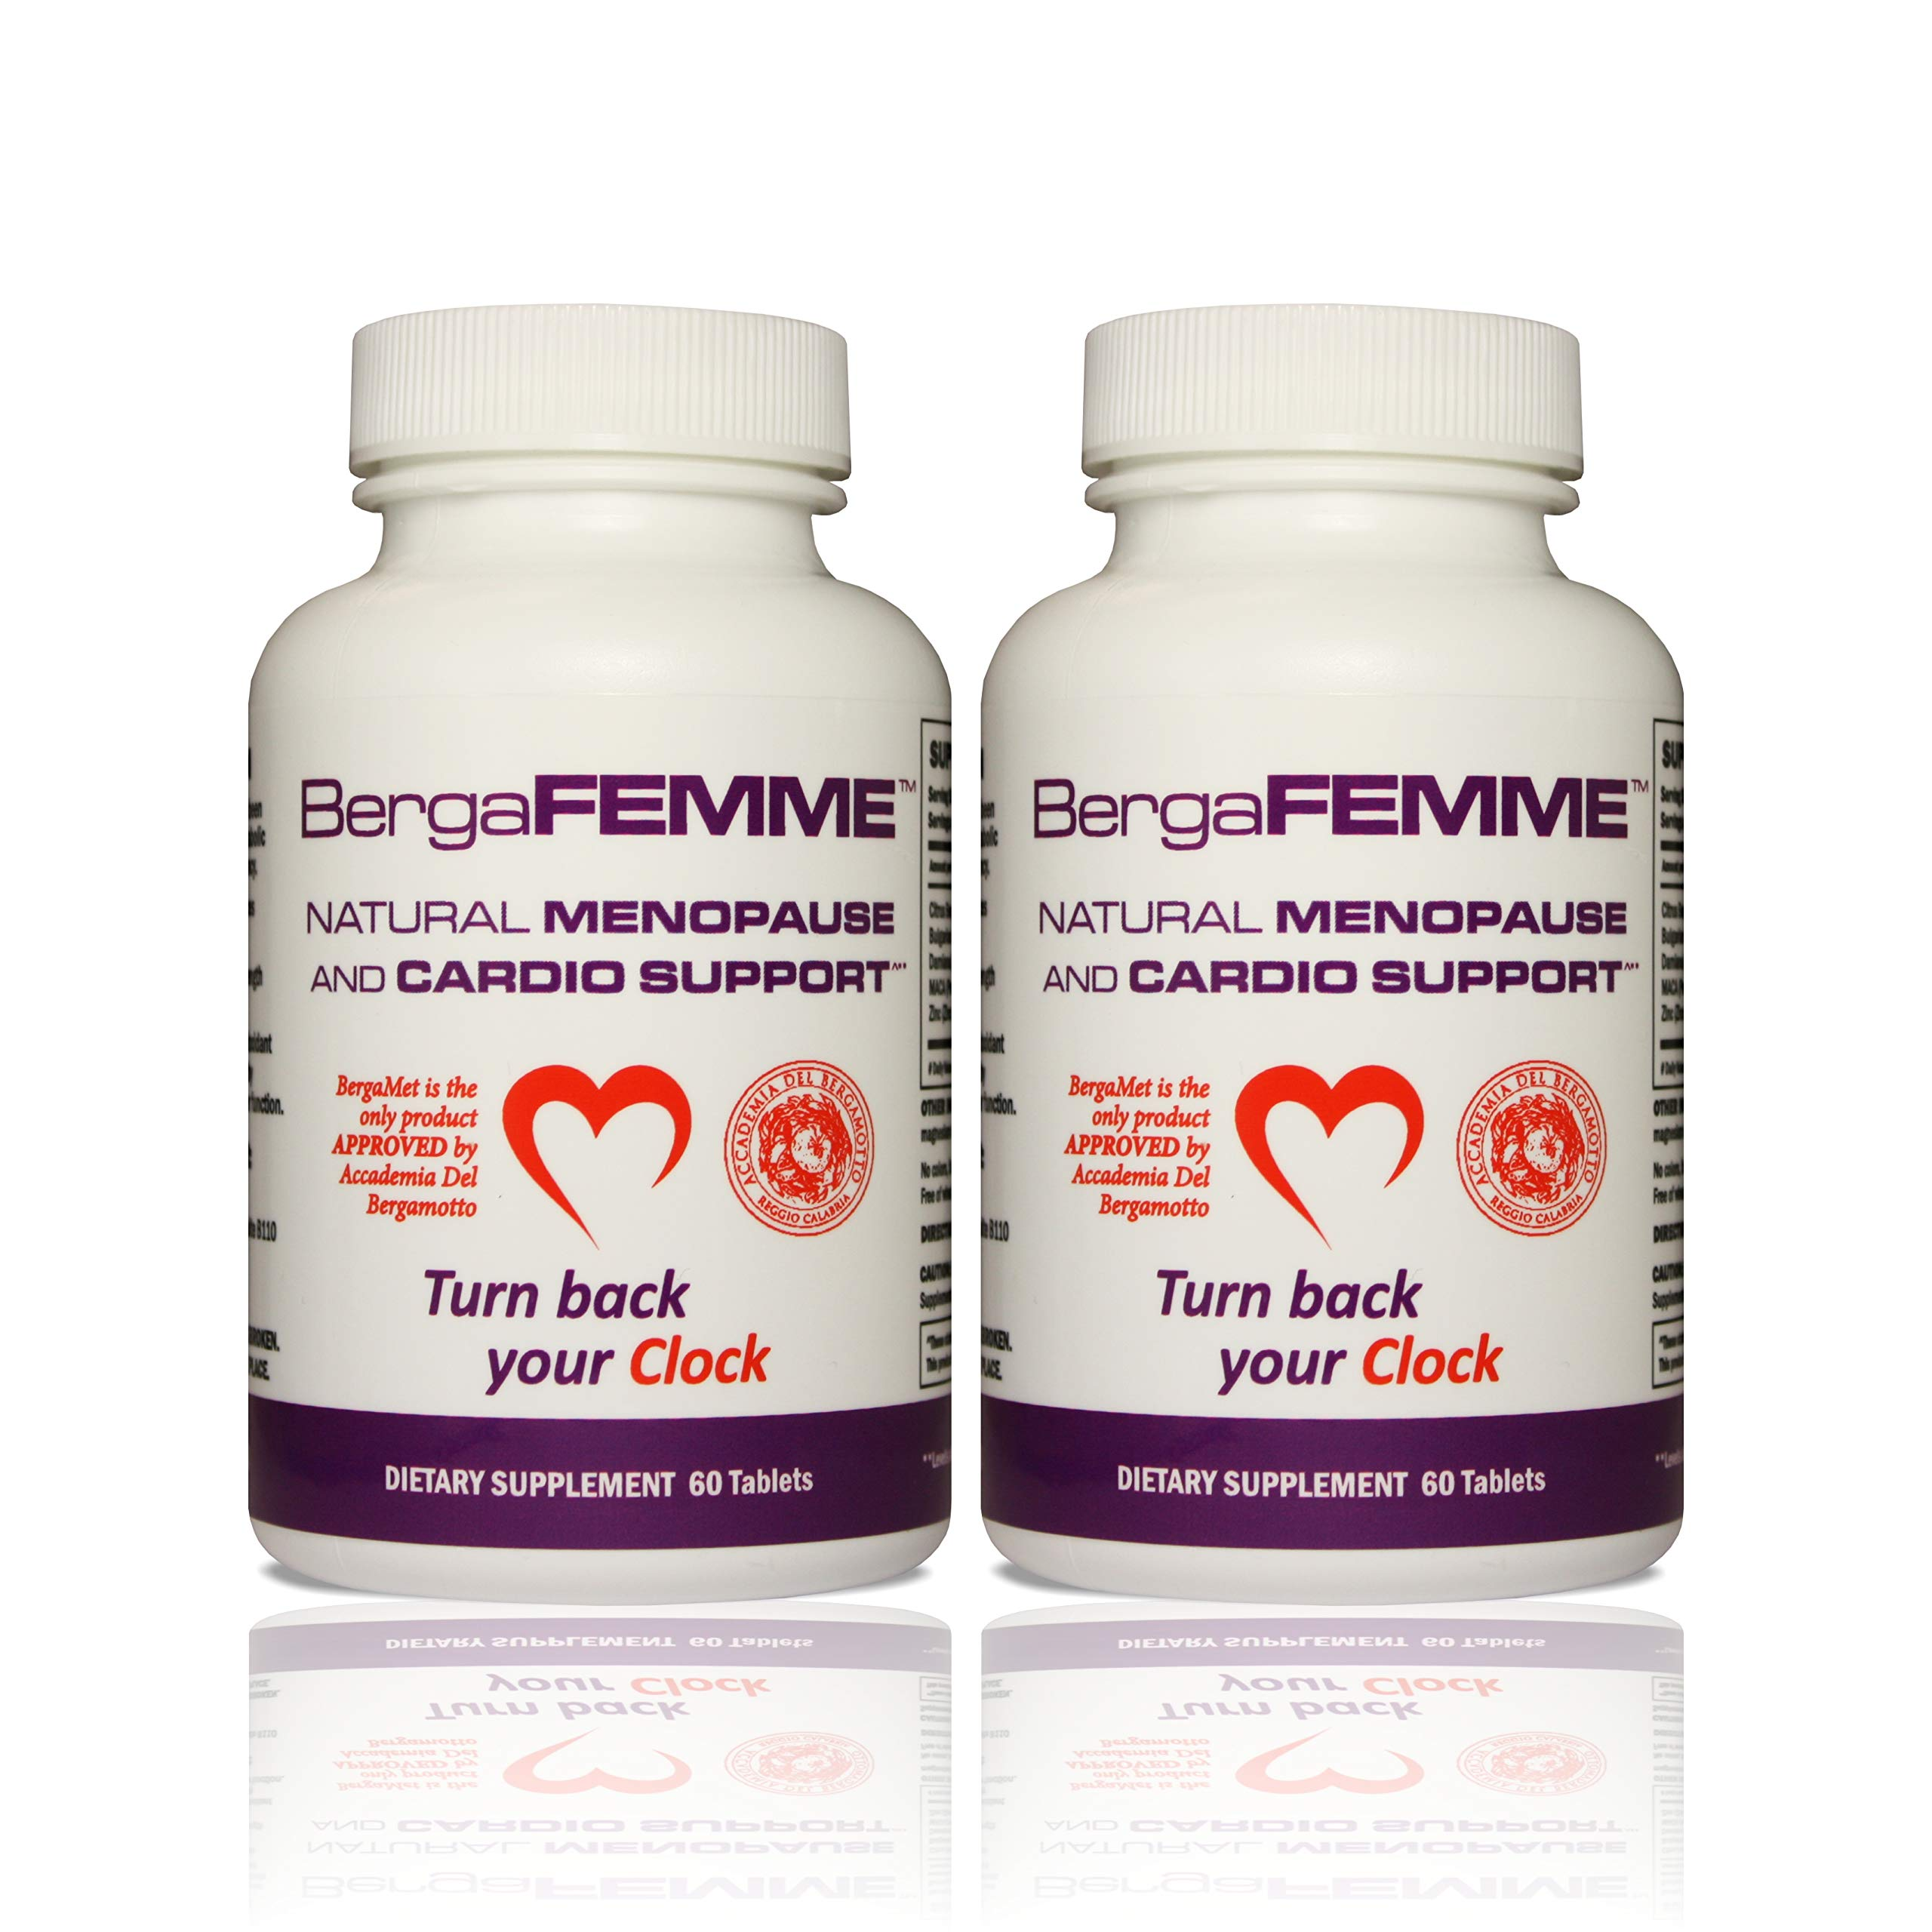 BergaFEMME Women's Menopause Relief 120 Tablets. Mood & Hot Flashes, Increase Metabolism, Weight Loss, Night Sweats, Cholesterol & Blood Pressure, Clinical Trials, Non-GMO & Gluten Free